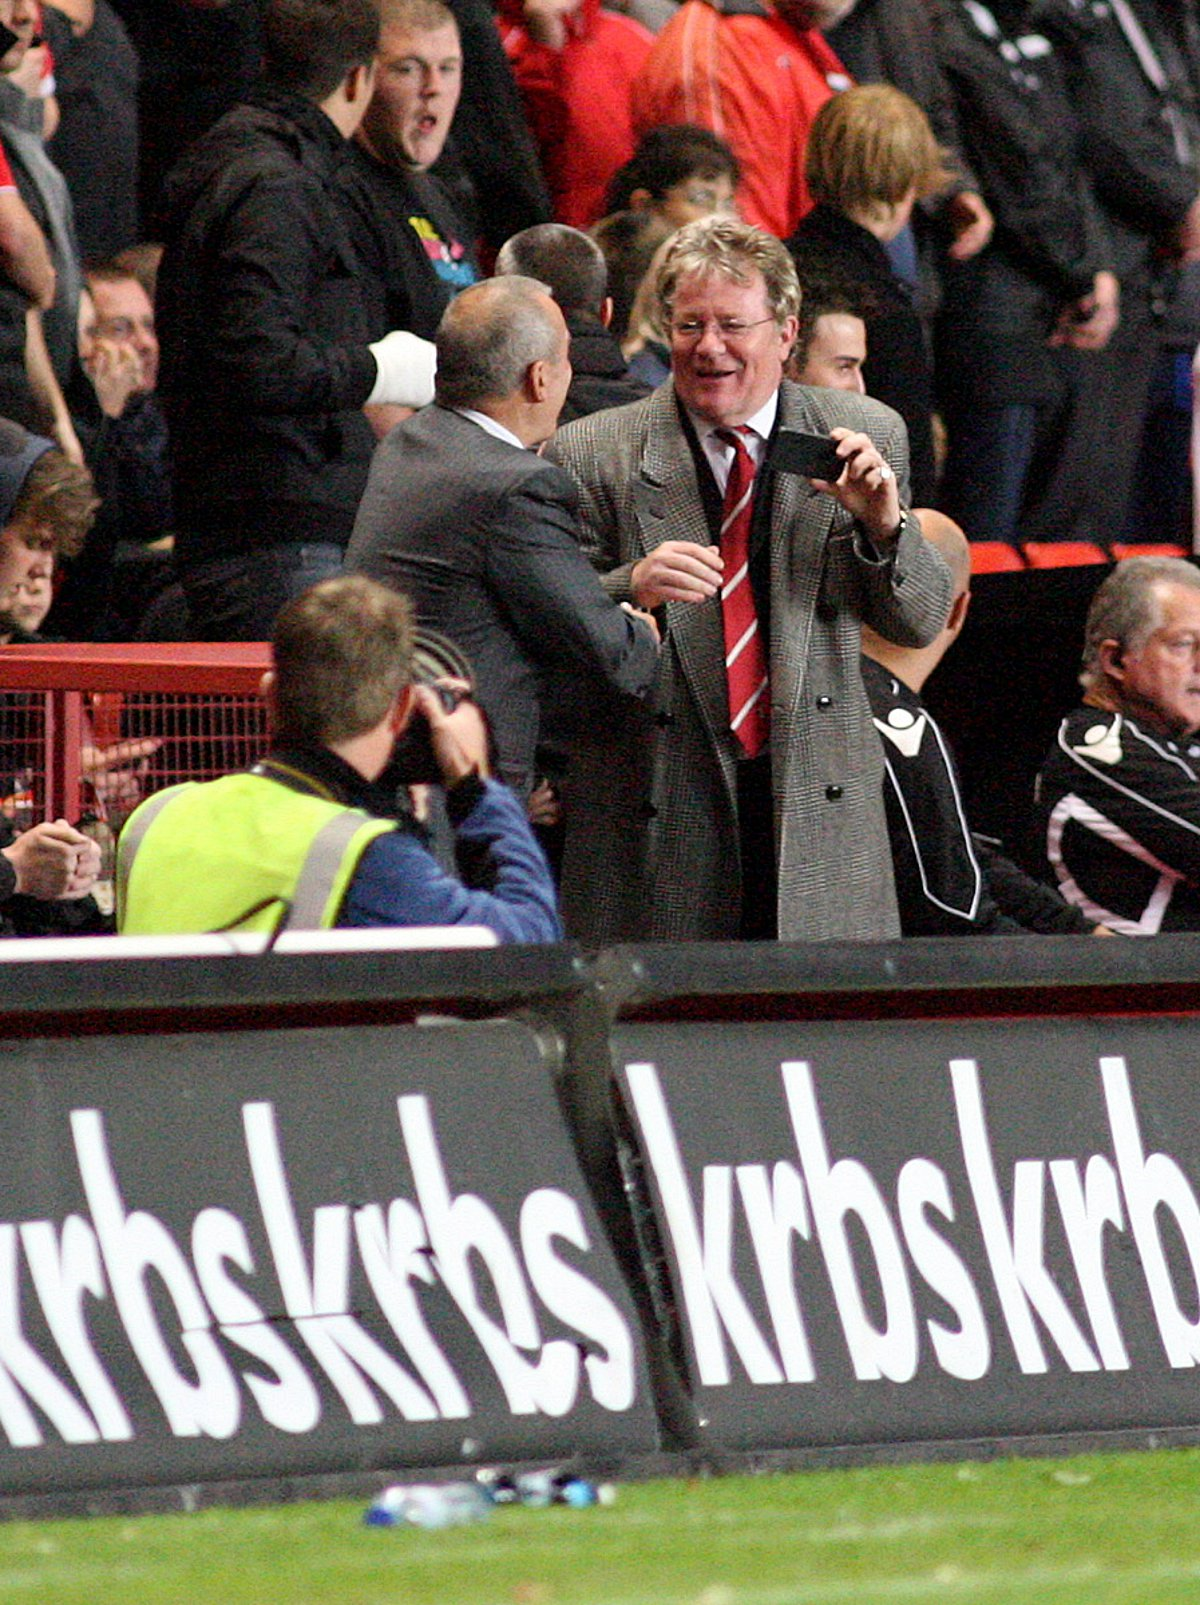 Jim Davidson on the touchline at The Valley. Picture by Edmund Boyden.